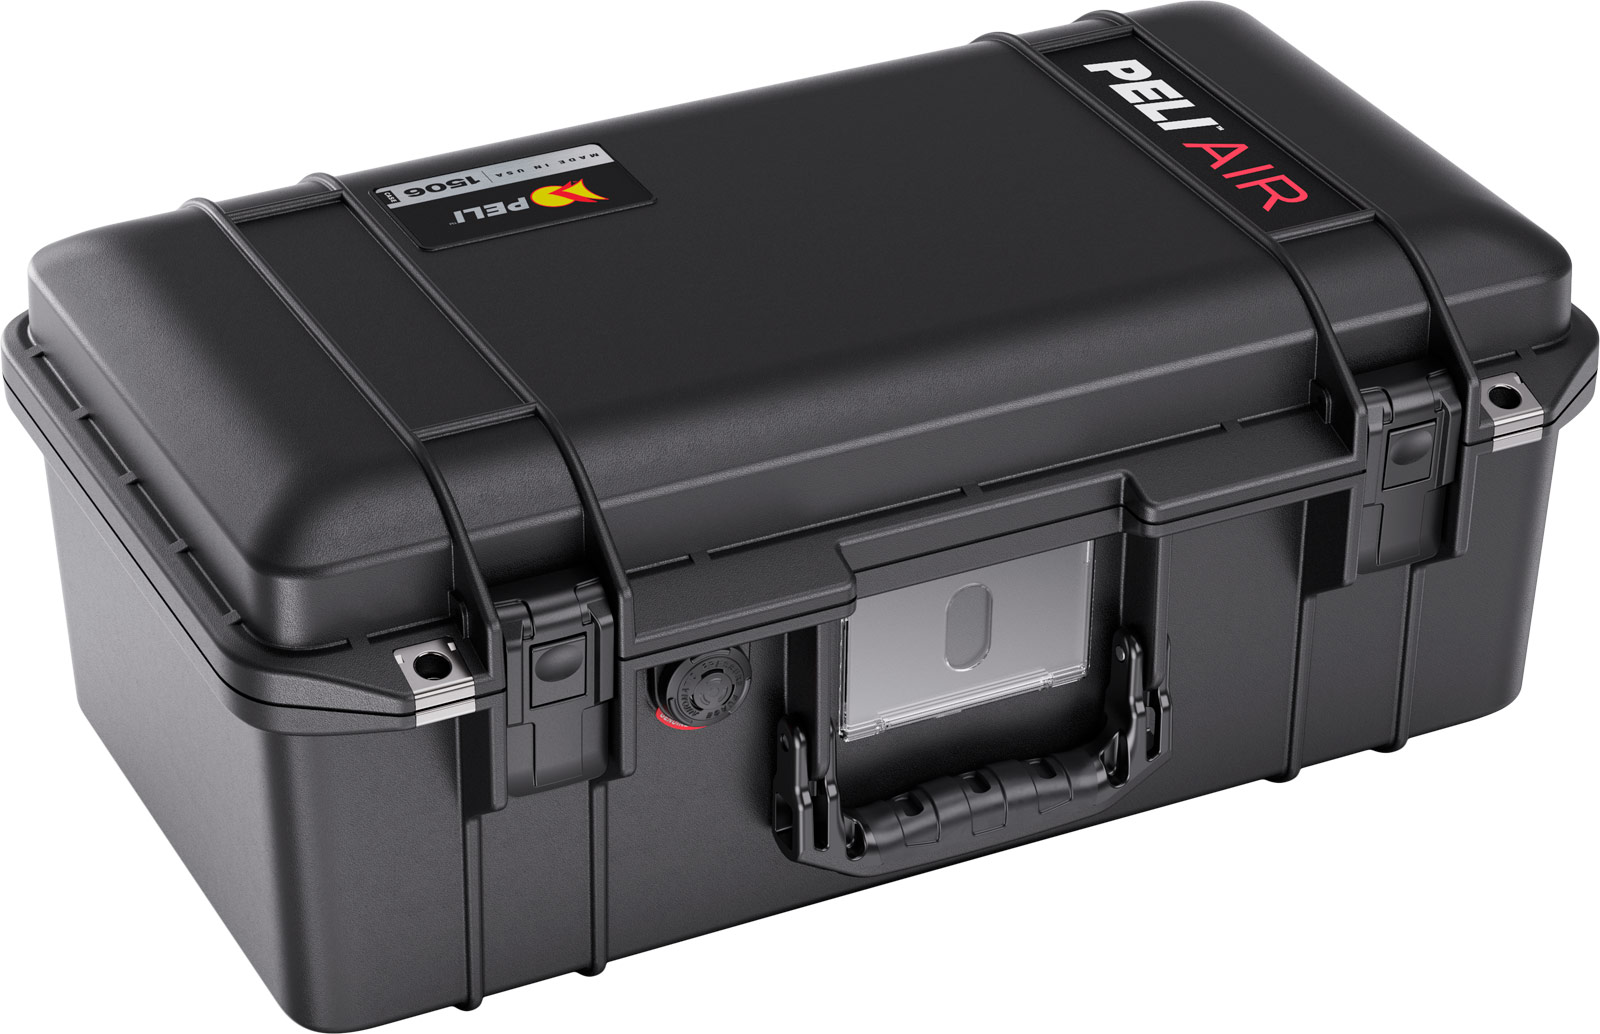 peli 1506 deep duffle camera case